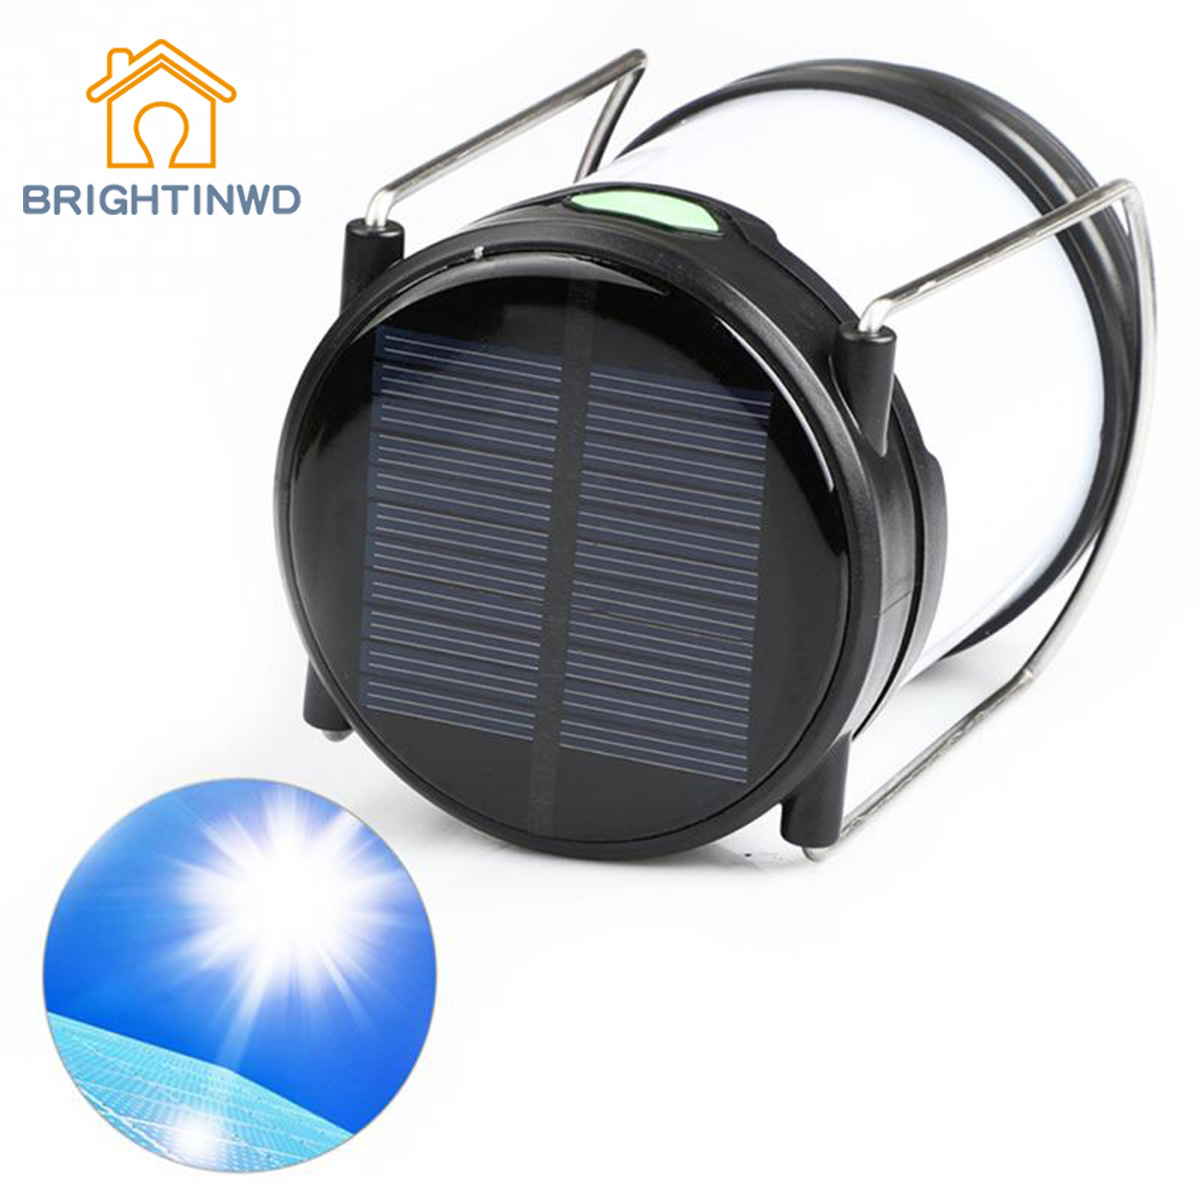 BRIGHTINWD Solar Camping Lantern Outdoor Garden Lamp Emergency Lights Waterproof USB Lamp Portable LED Rechargeable Camping Lamp